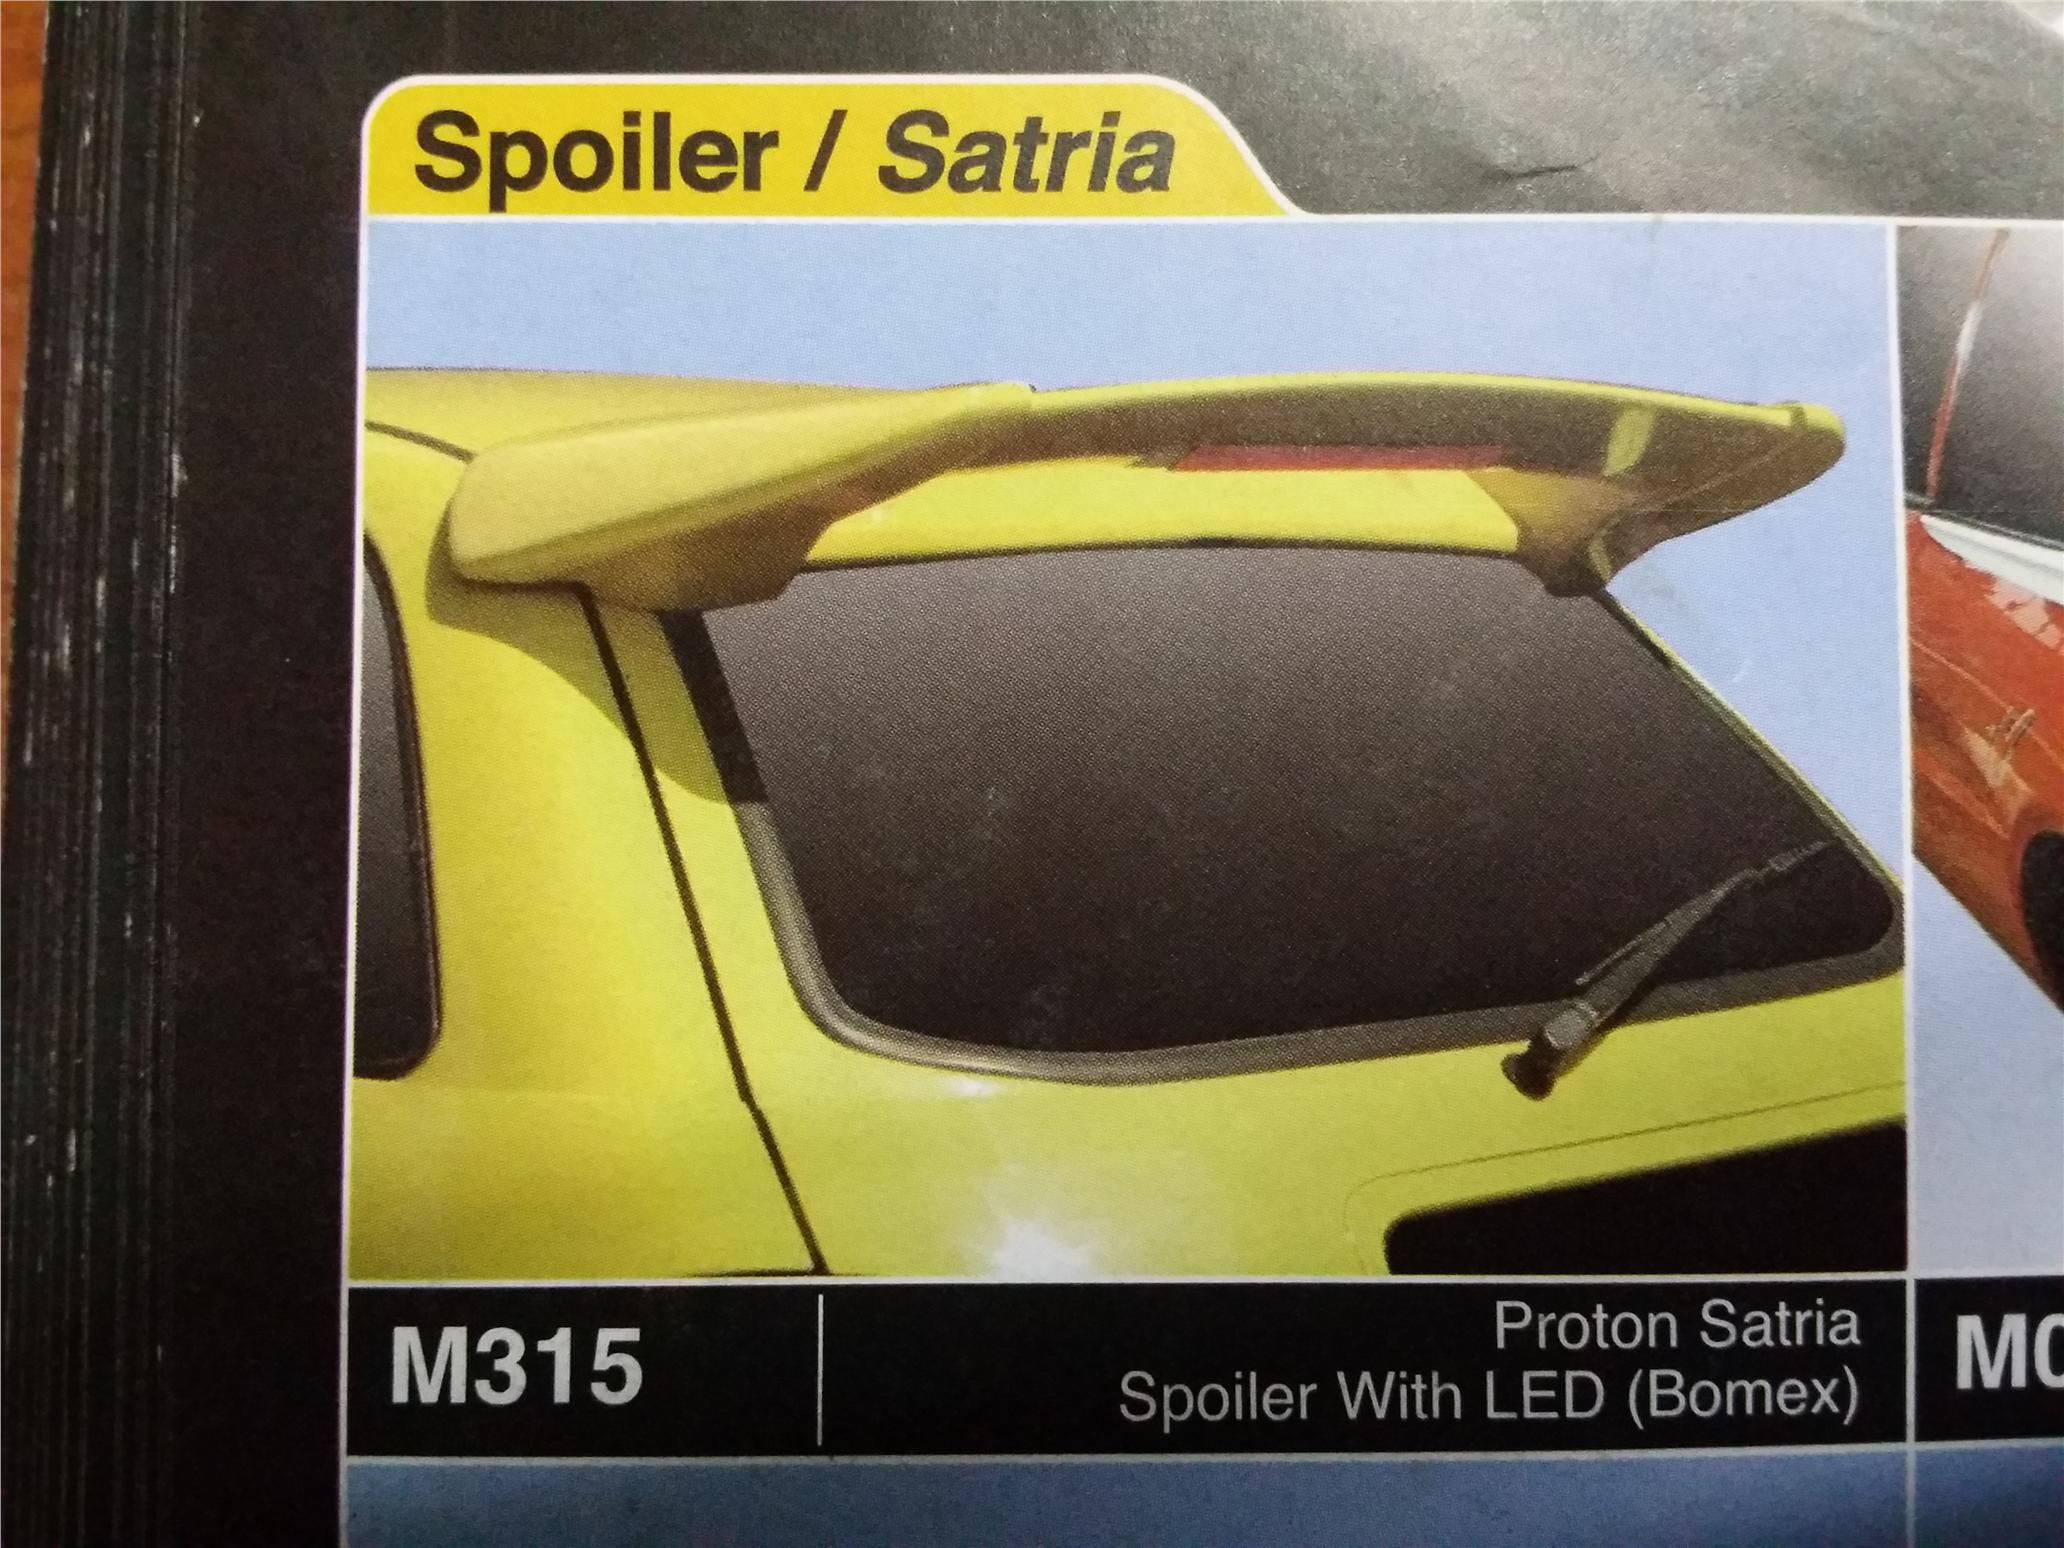 PROTON SATRIA SPOILER WITH LED BOMEX